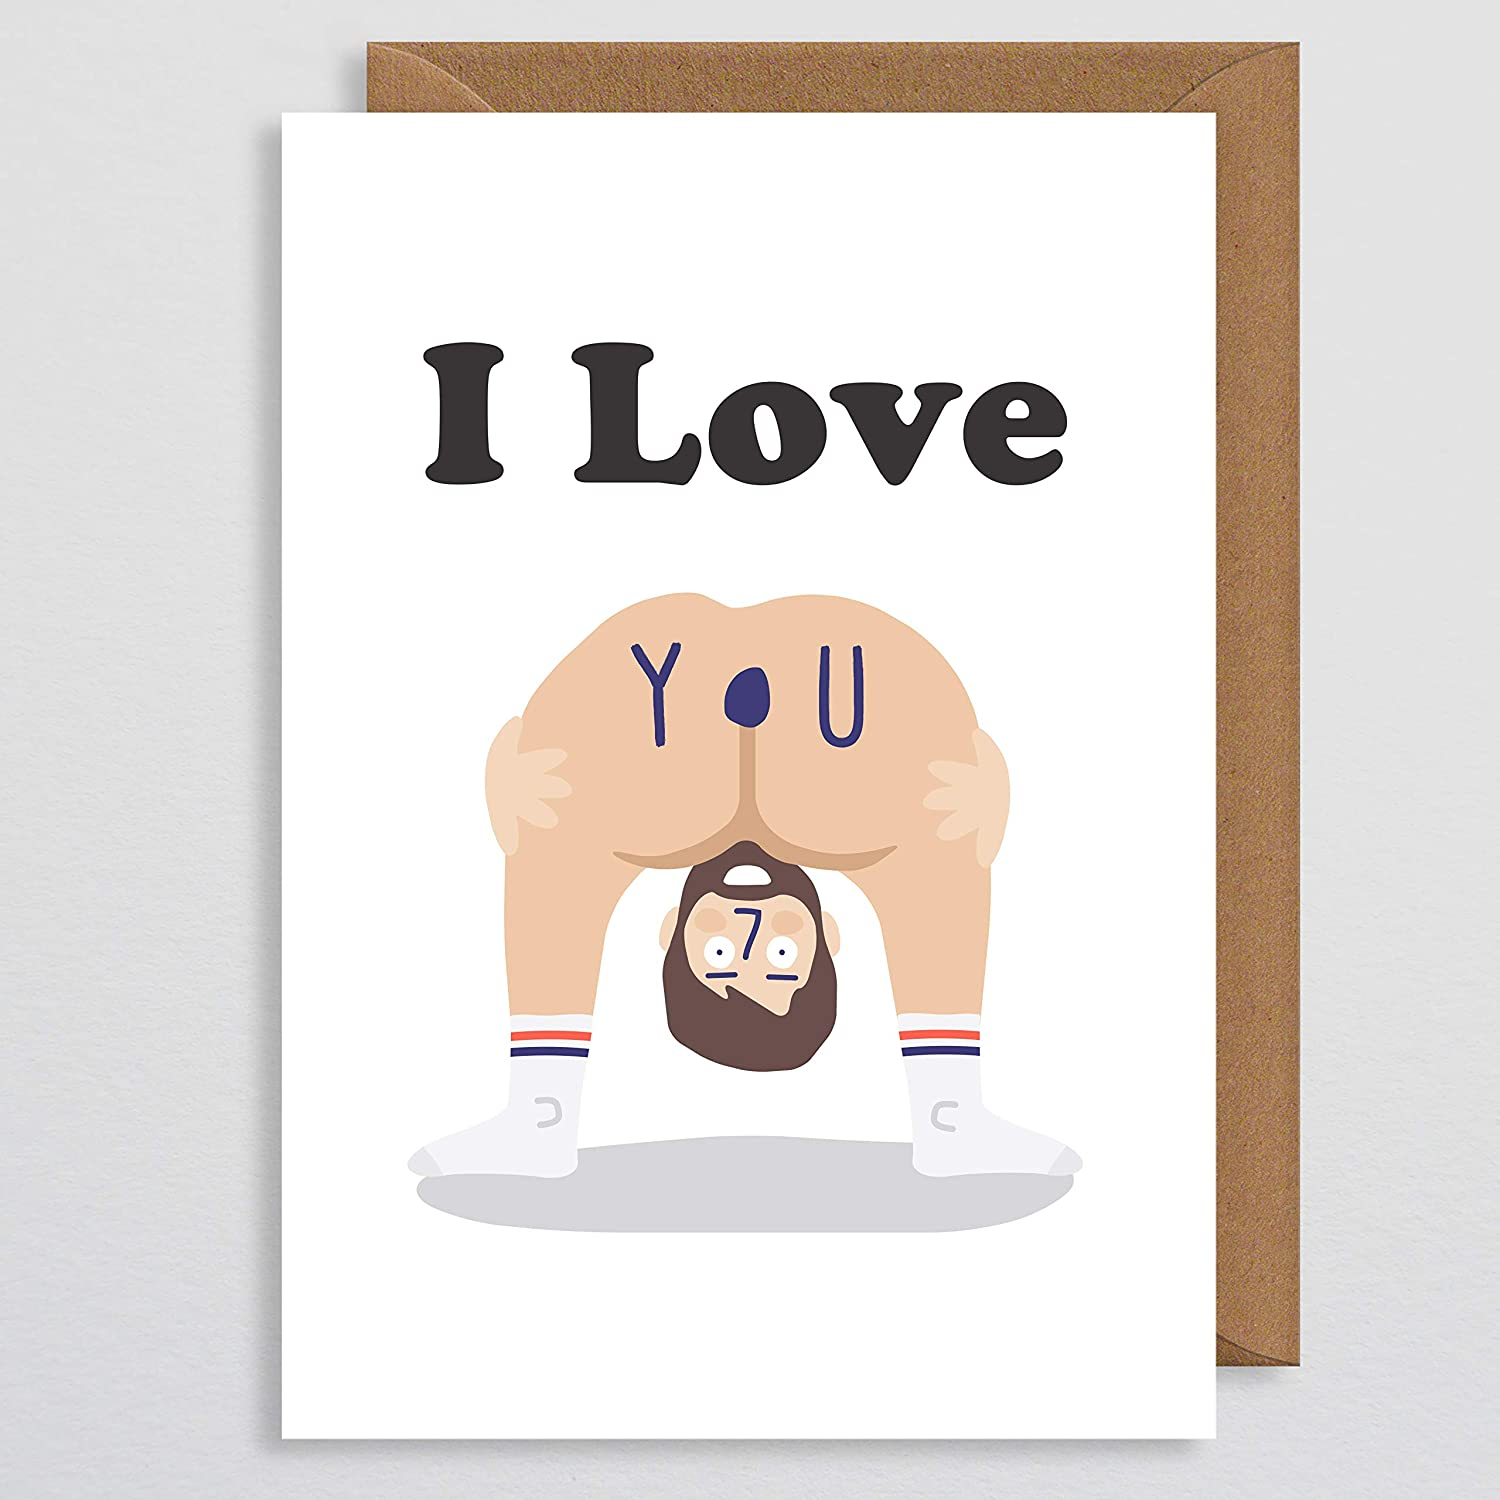 Valentines Card Funny Rude Naked Card Bum Lol Naughty Valentines Card Funny Valentines Card For Her Girlfriend Wife Couple Partner